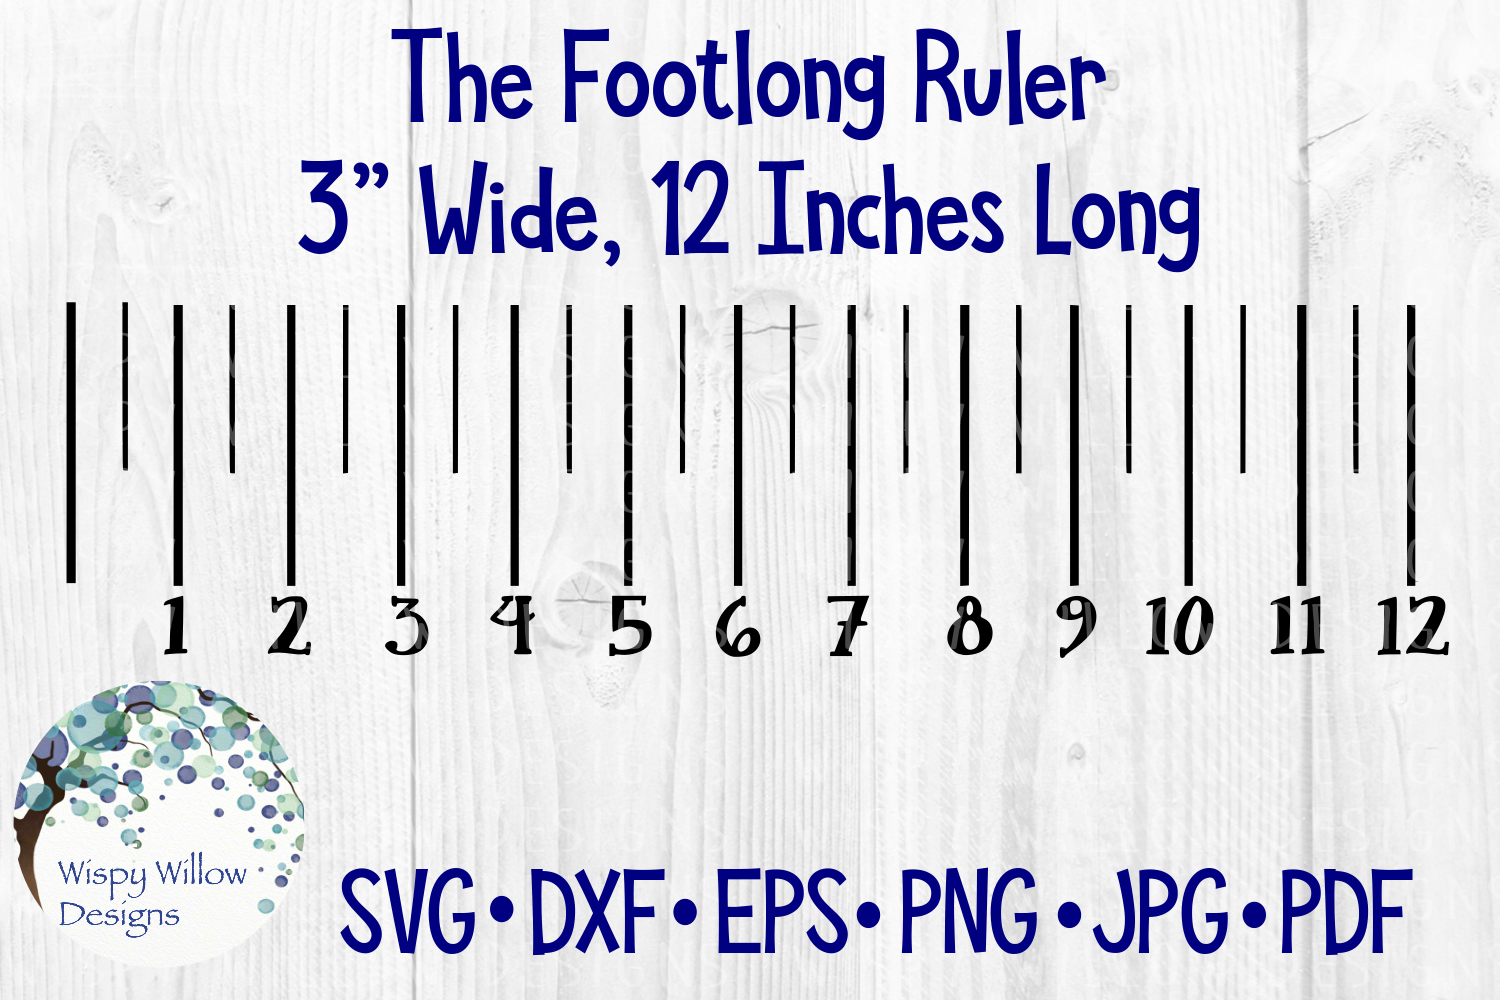 Download Free 12 Inch Ruler Foot Graphic By Wispywillowdesigns Creative Fabrica for Cricut Explore, Silhouette and other cutting machines.